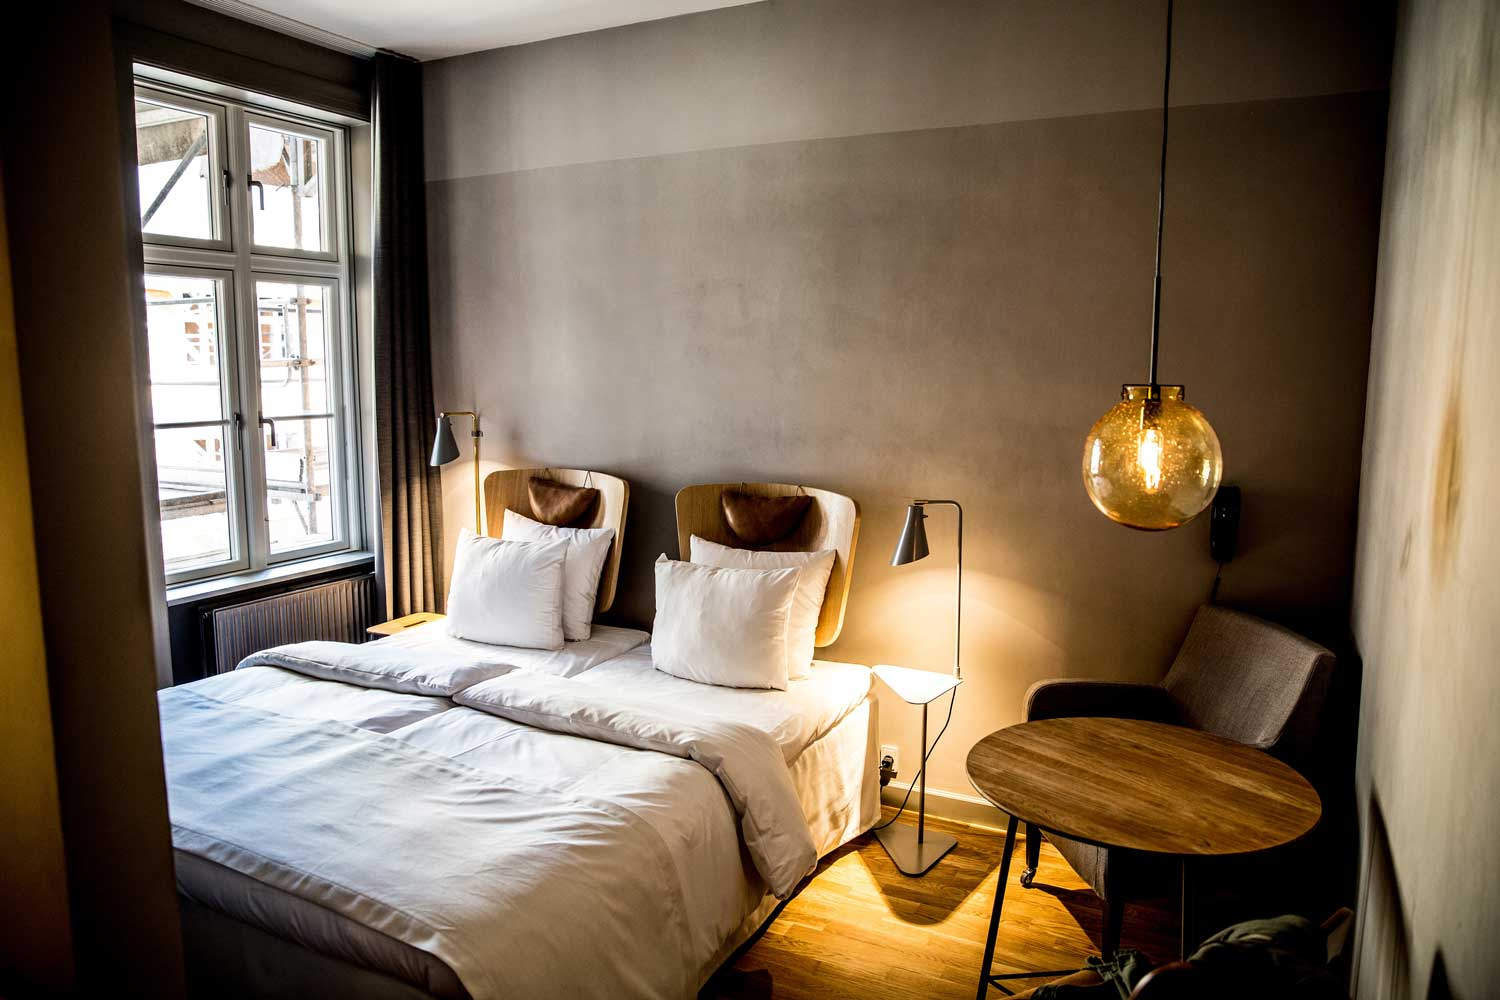 Hotel sp34 copenhagen denmark yellowtrace for Design hotel copenhagen